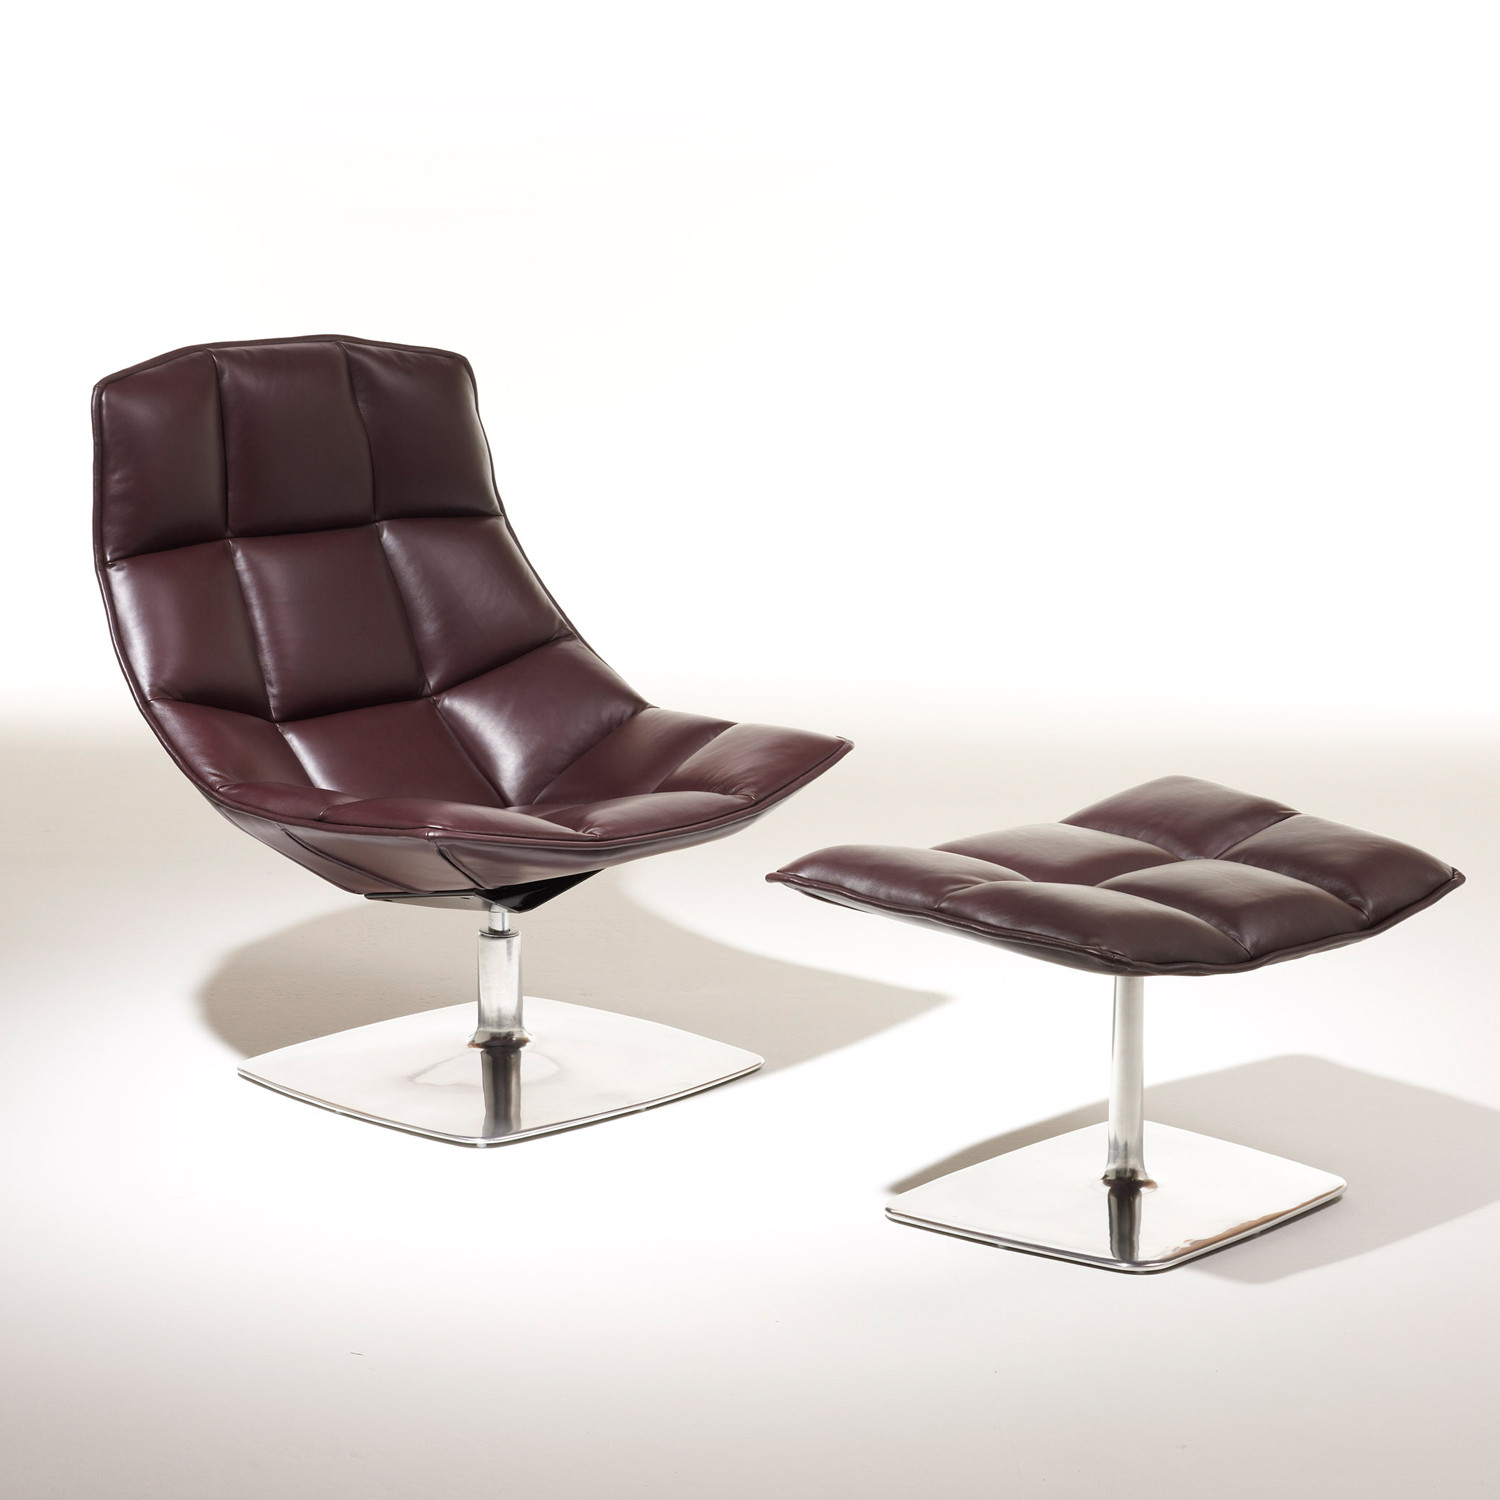 Jehs + Laub Lounge Chair & Ottoman